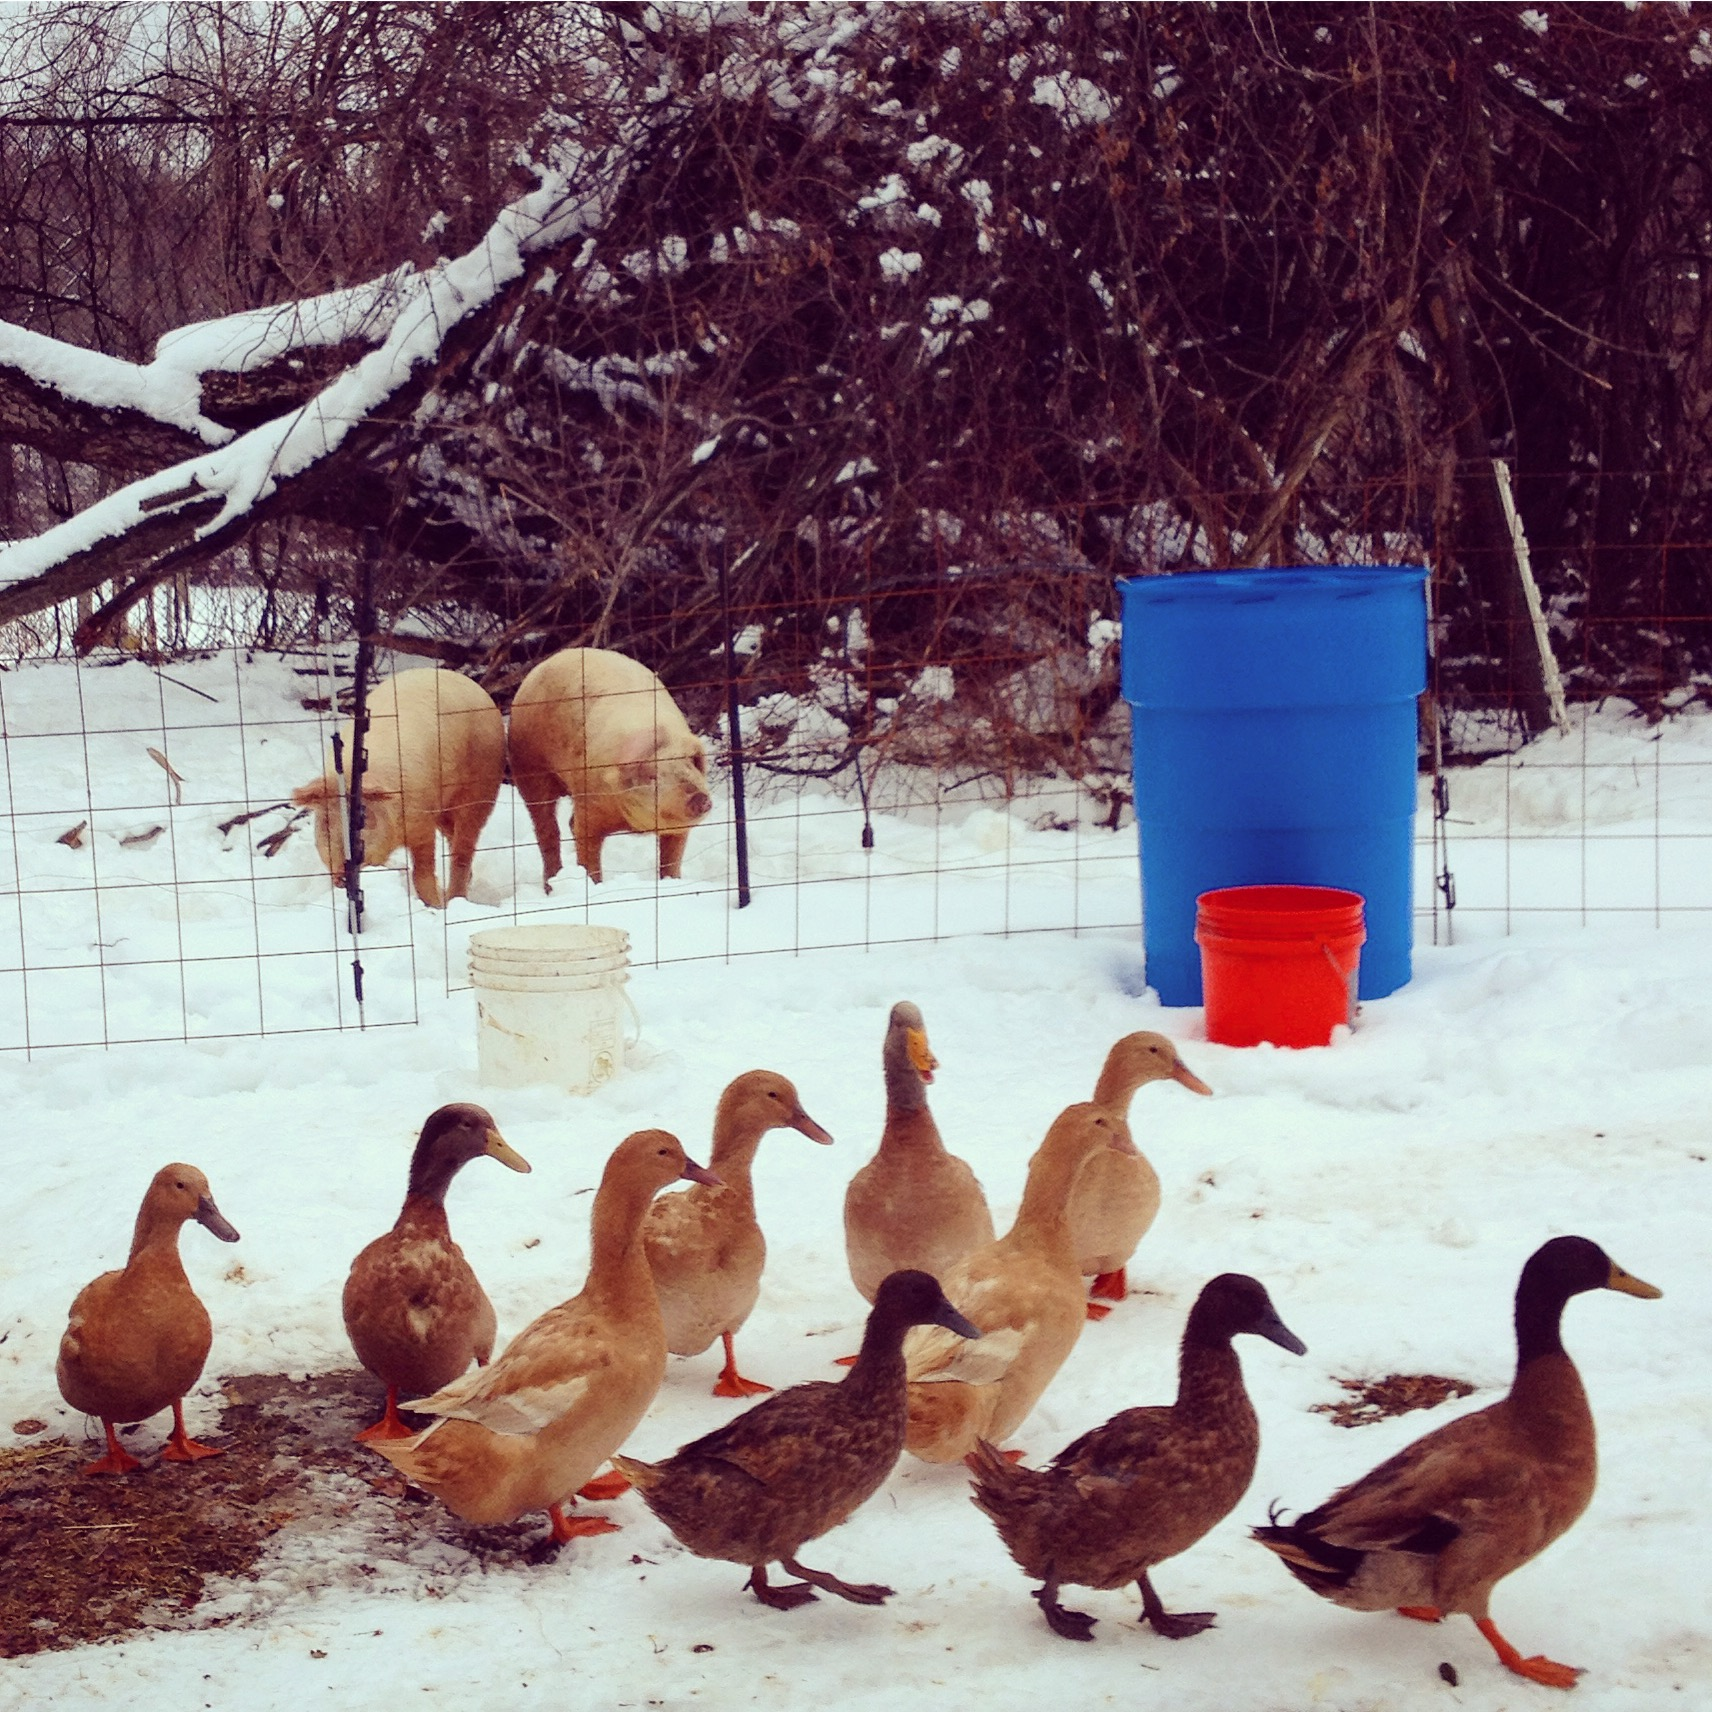 the ducks like to visit the pigs!